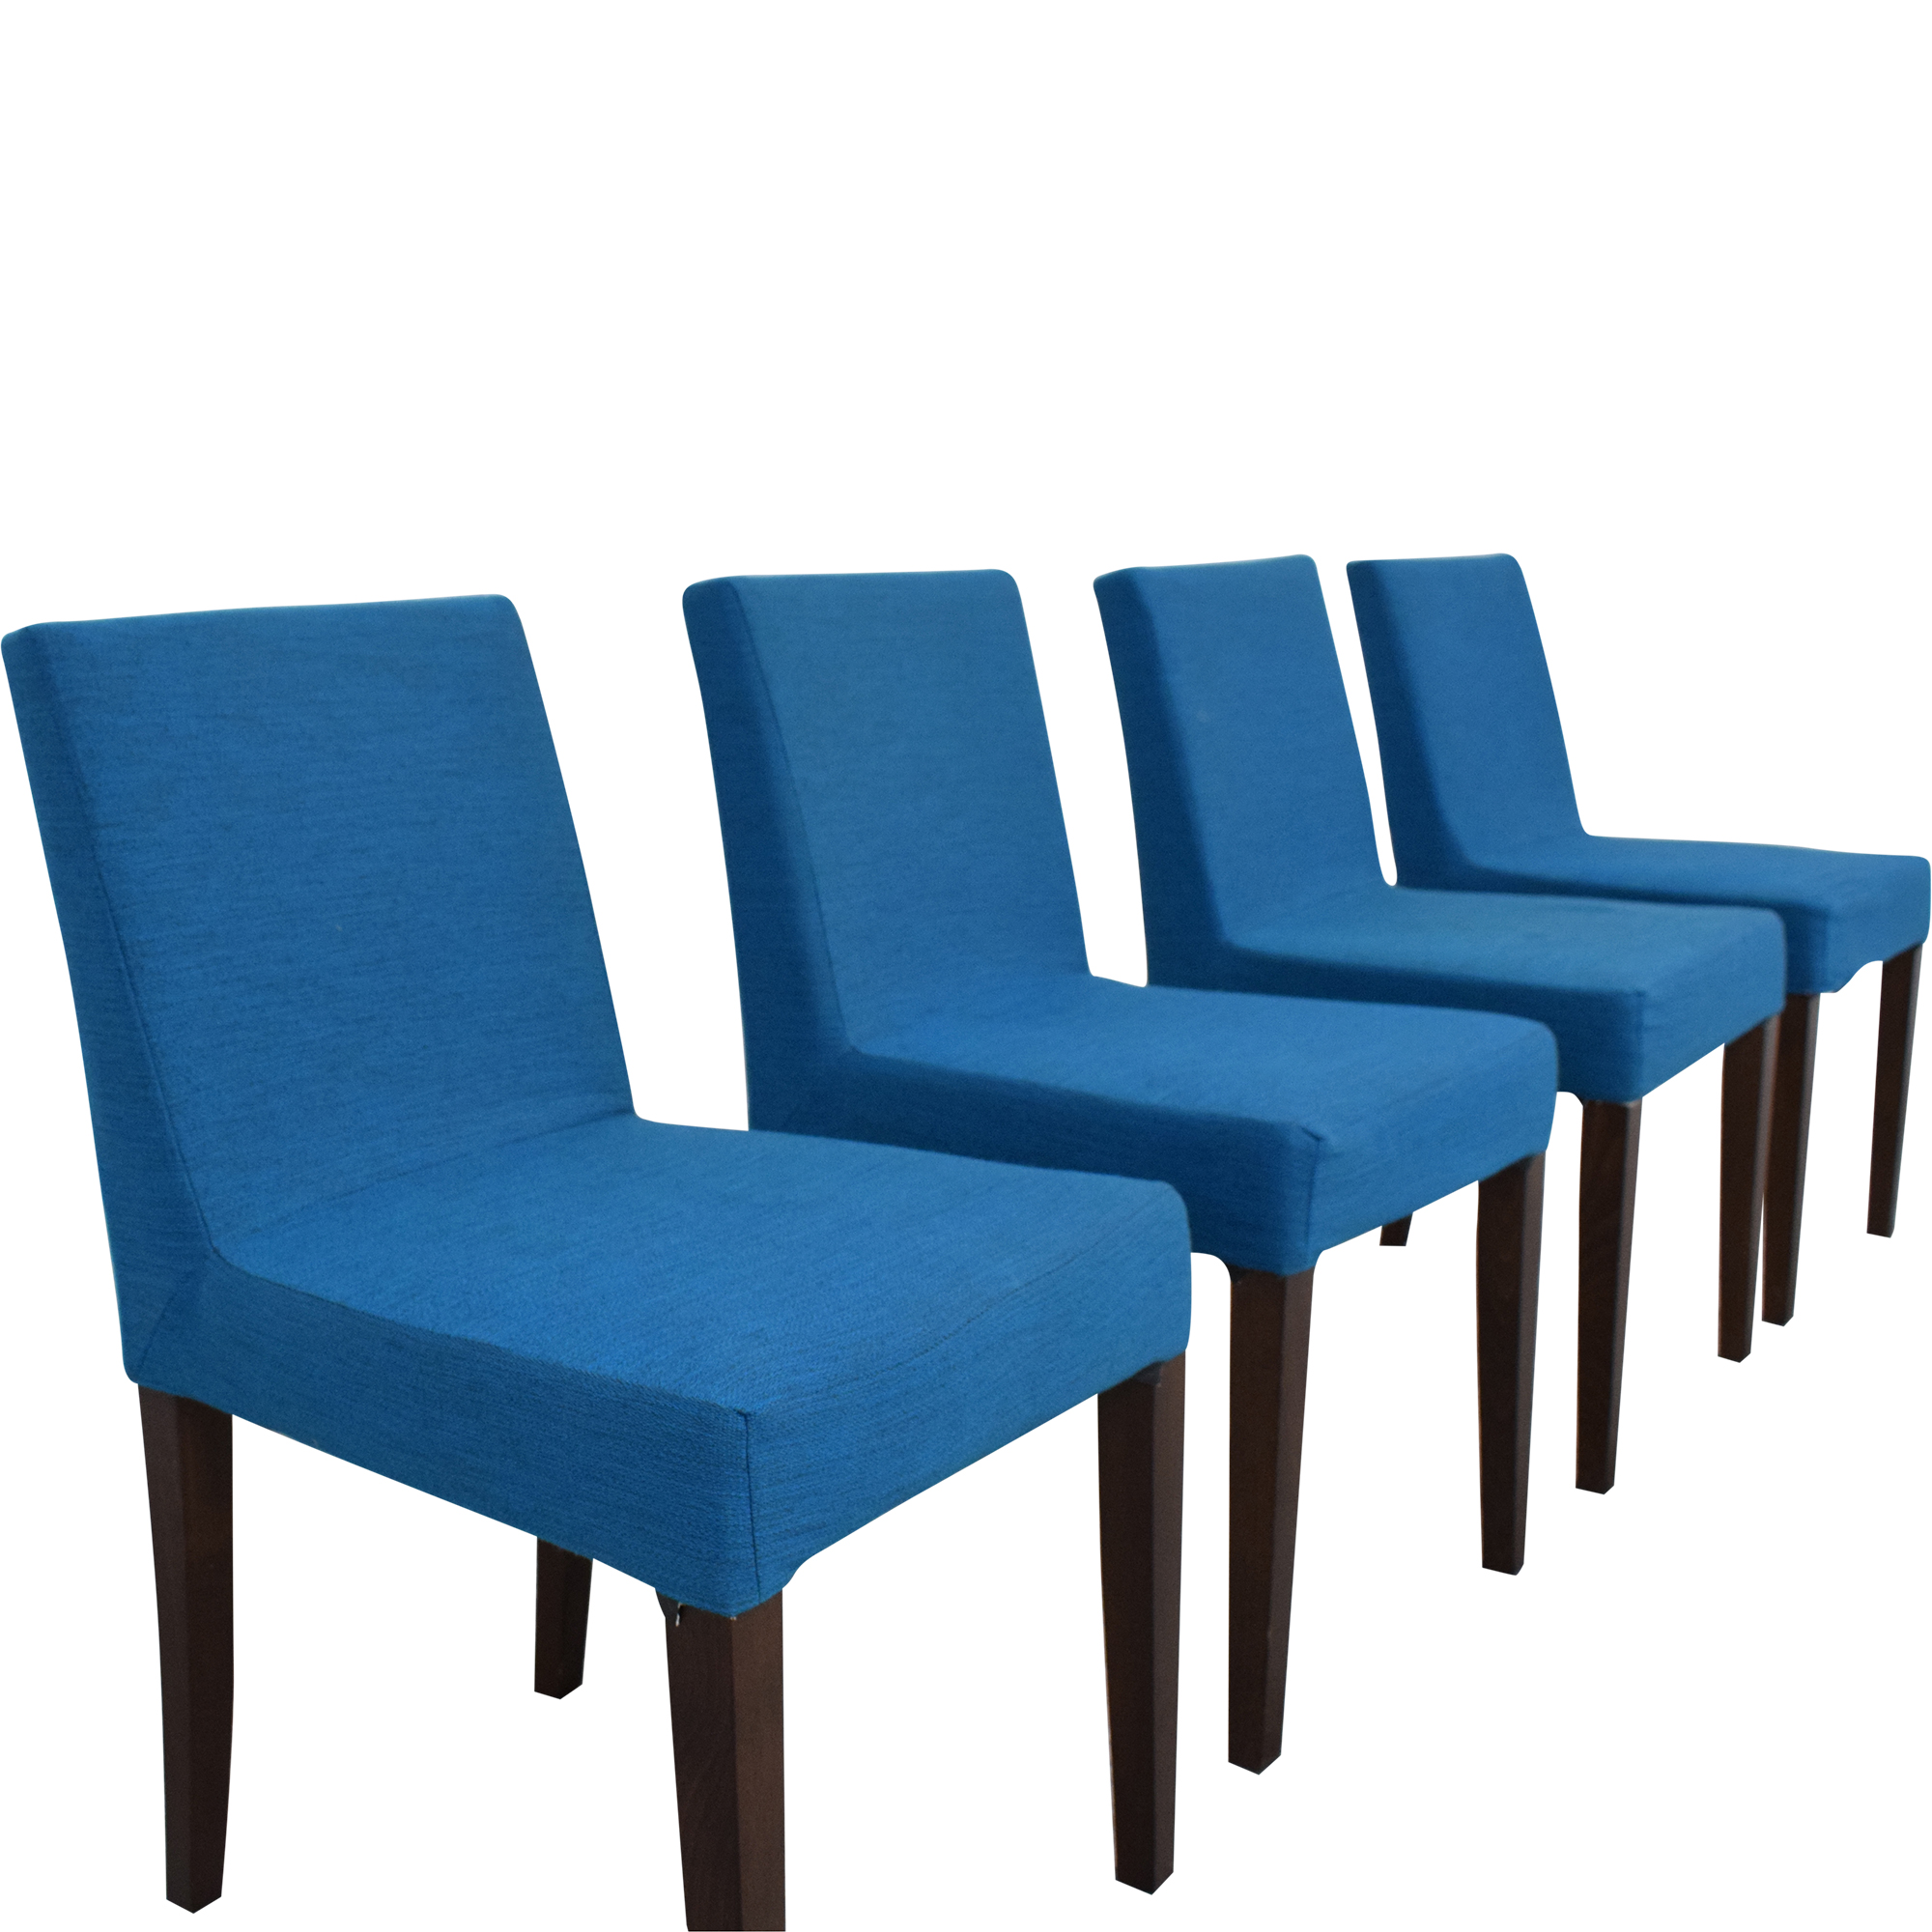 Ligne Roset Ligne Roset Didier Gomez French Line Dining Chairs Chairs